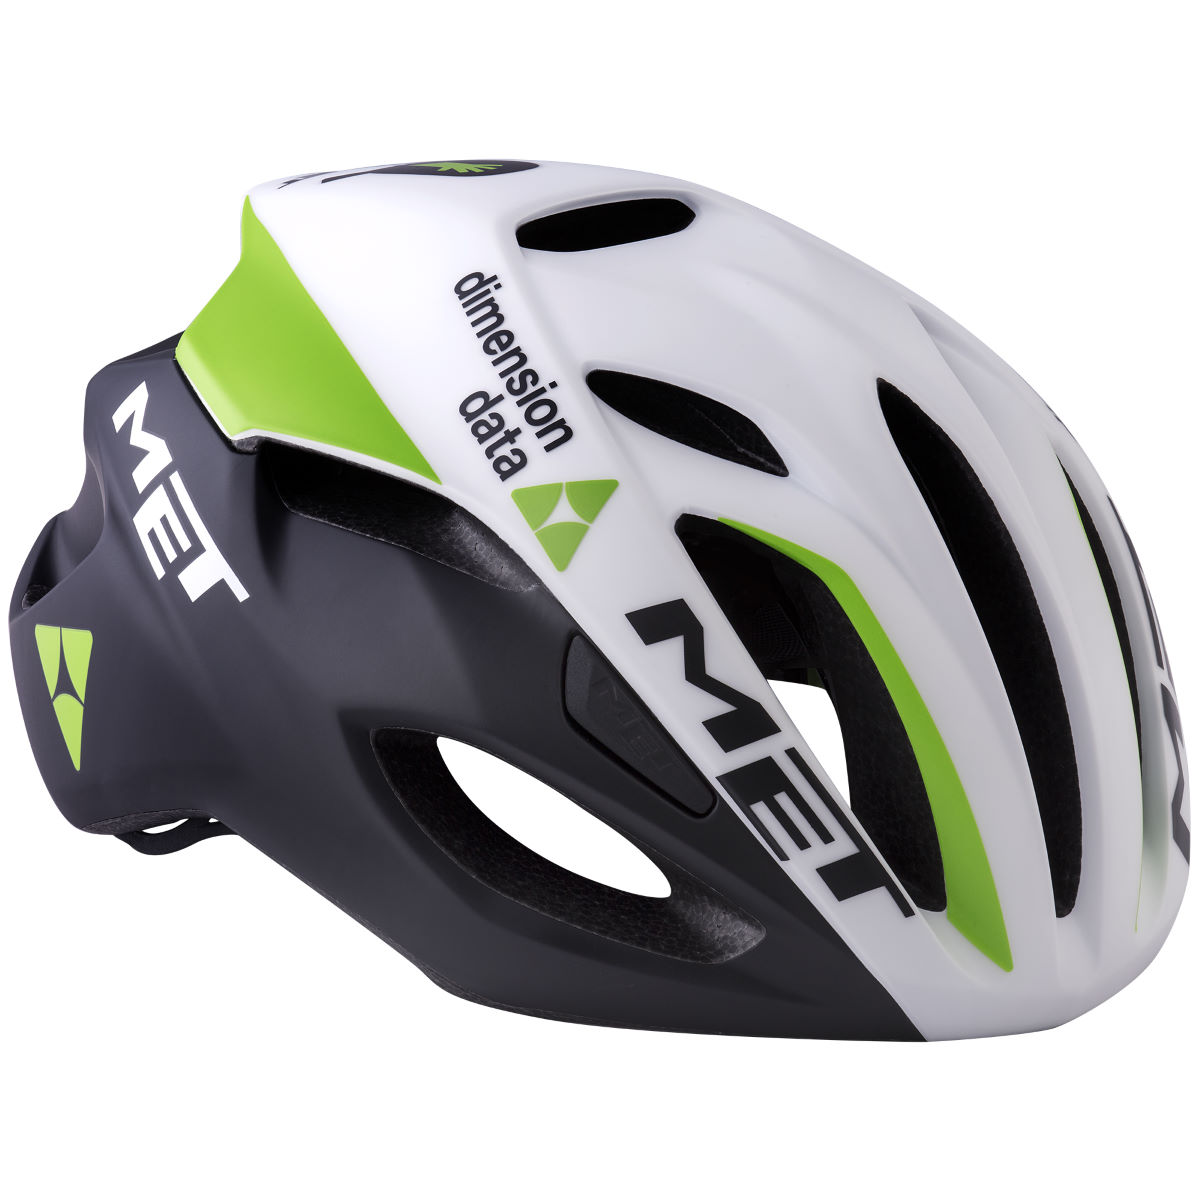 MET - Dimension Data Rivale Aero Road Helmet Black/Green - Medium